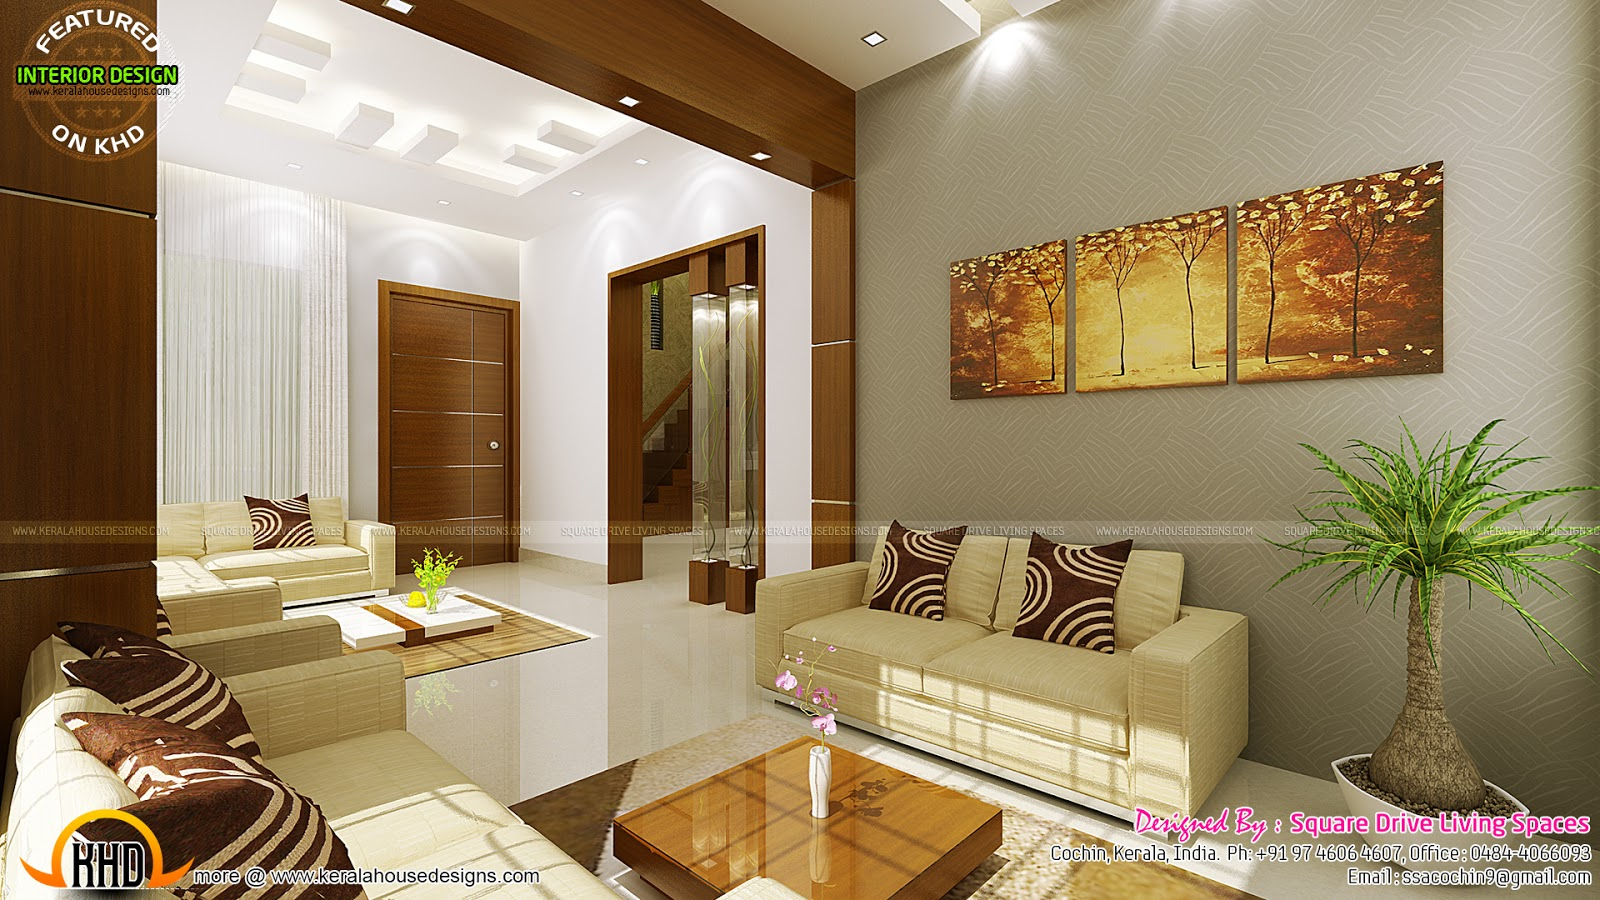 home design ideas Contemporary kitchen, dining and living room - Kerala home